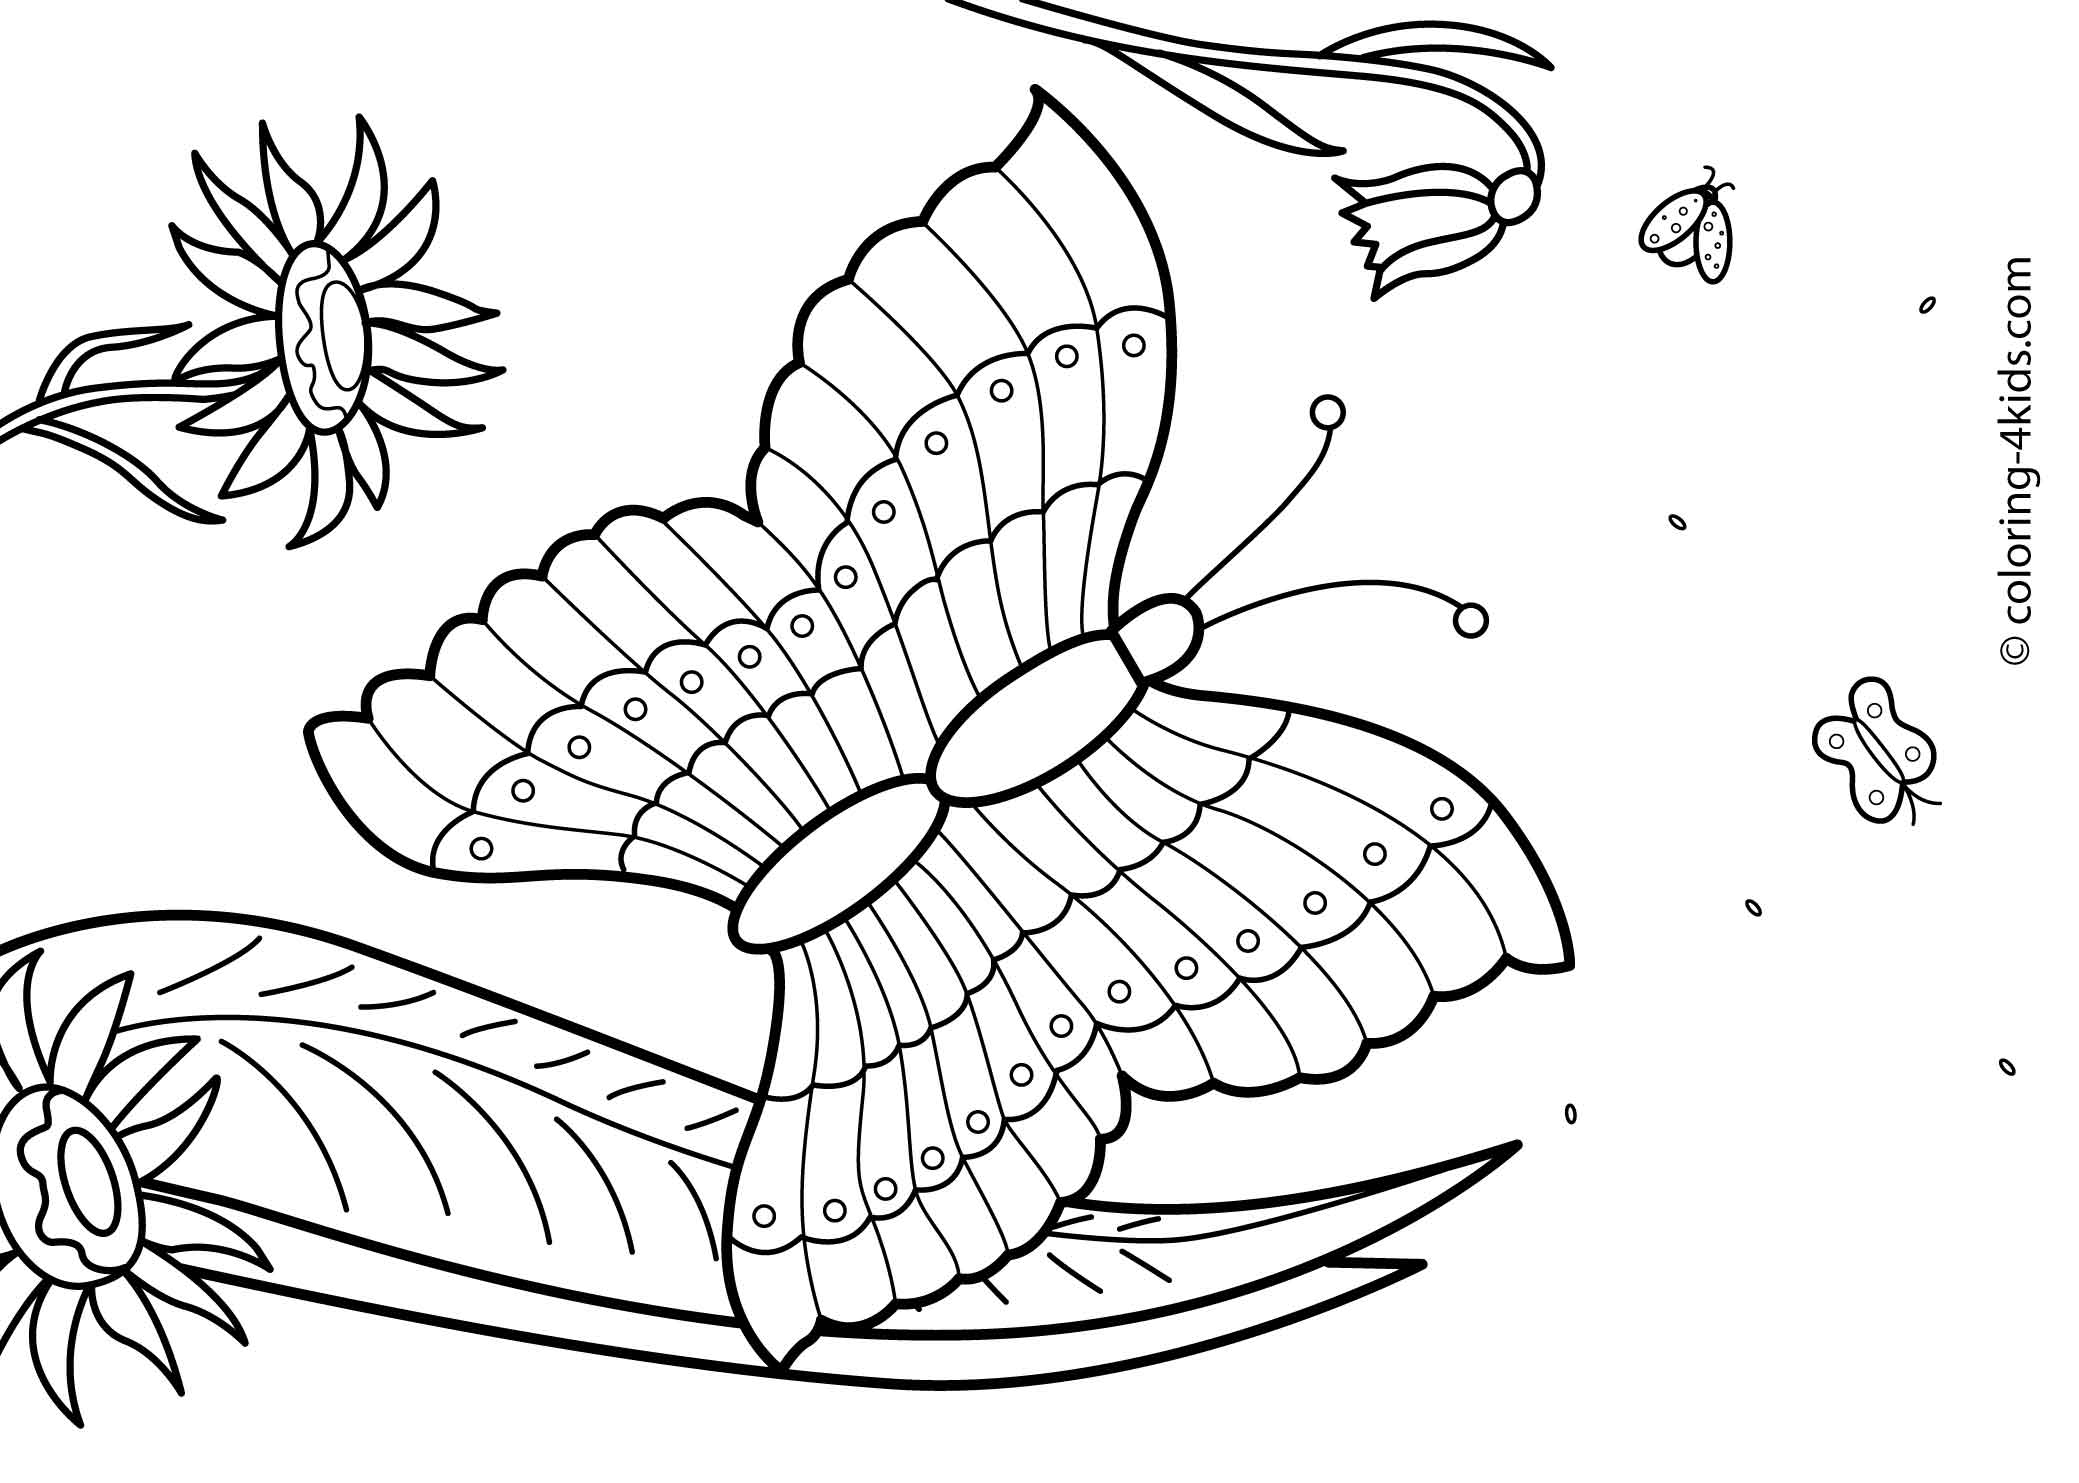 free coloring pages summertime - photo#33